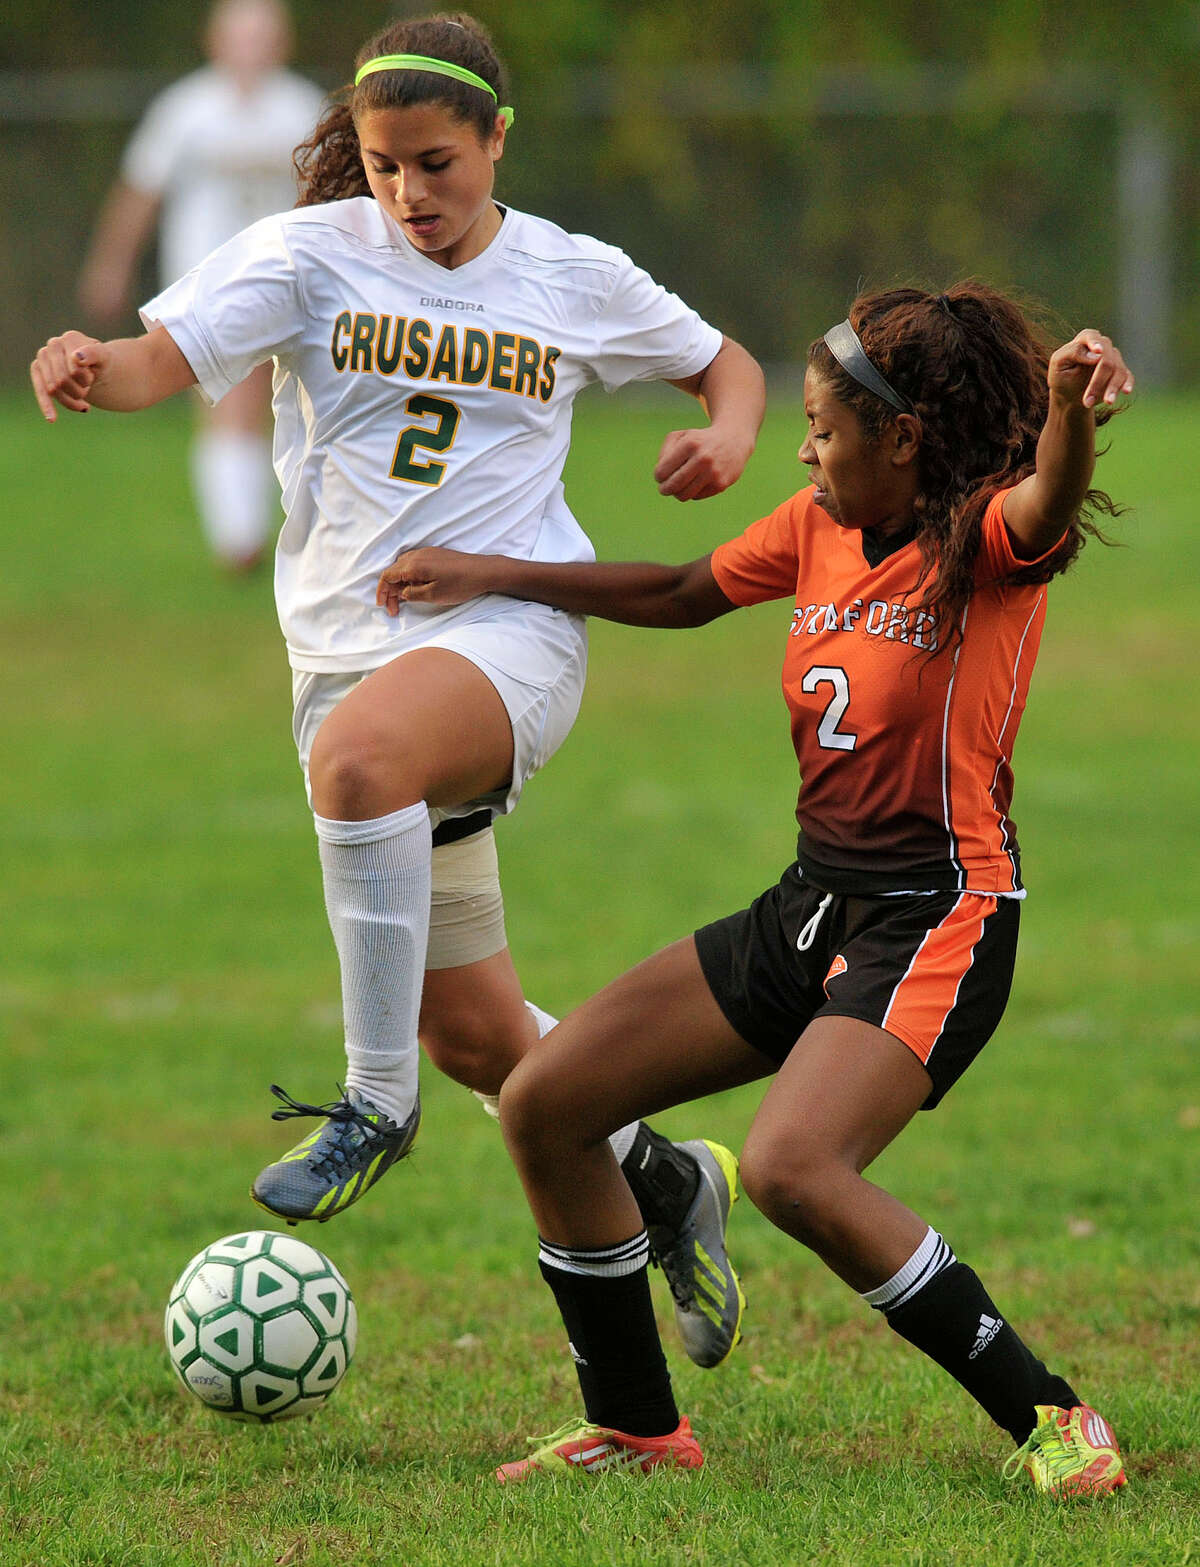 Stamfor's Aolani Hermosura flicks the ball from Trinity Catholic's Christina Bellacicco during their soccer game at Trinity Catholic High School in Stamford, Conn., on Tuesday, Oct. 21, 2014. Stamford won, 5-0.